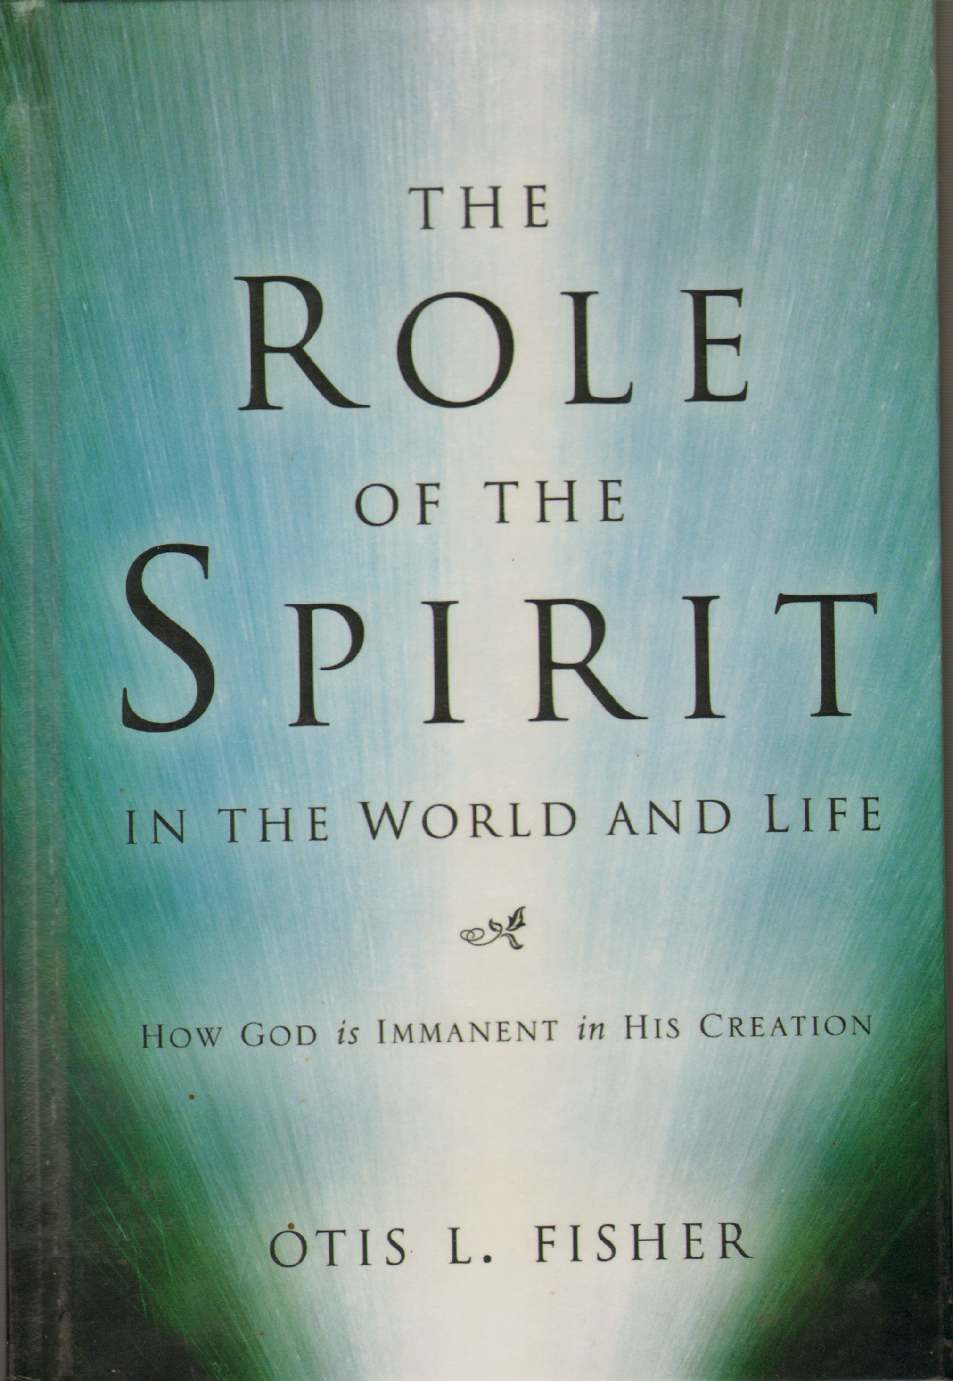 Image for THE ROLE OF THE SPIRIT IN THE WORLD AND LIFE